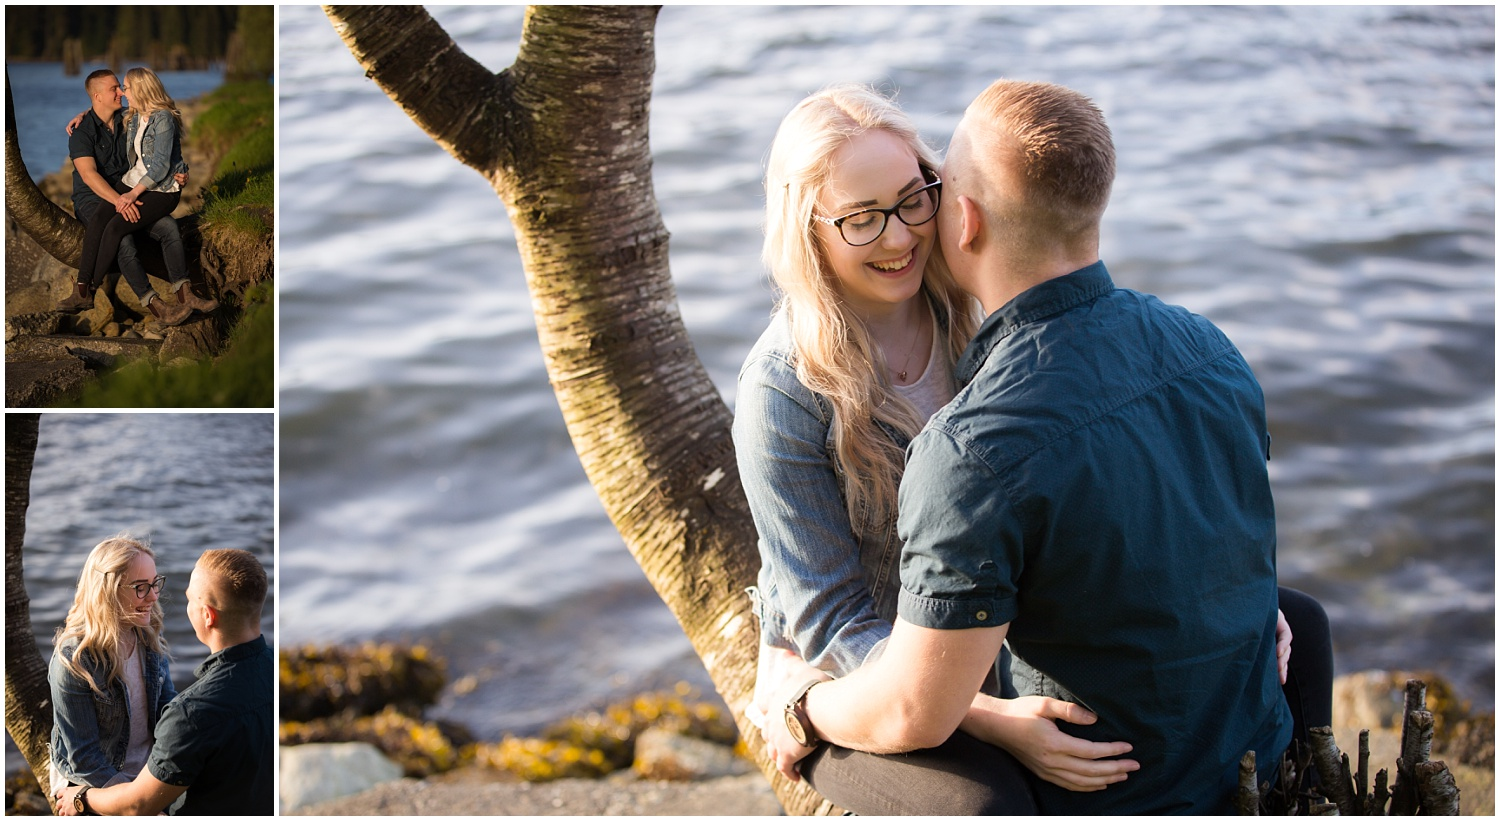 Amazing Day Photography - Barnet Marine Park Engagement Session - Burnaby Engagement Photographer - Langley Engagement Photographer (13).jpg